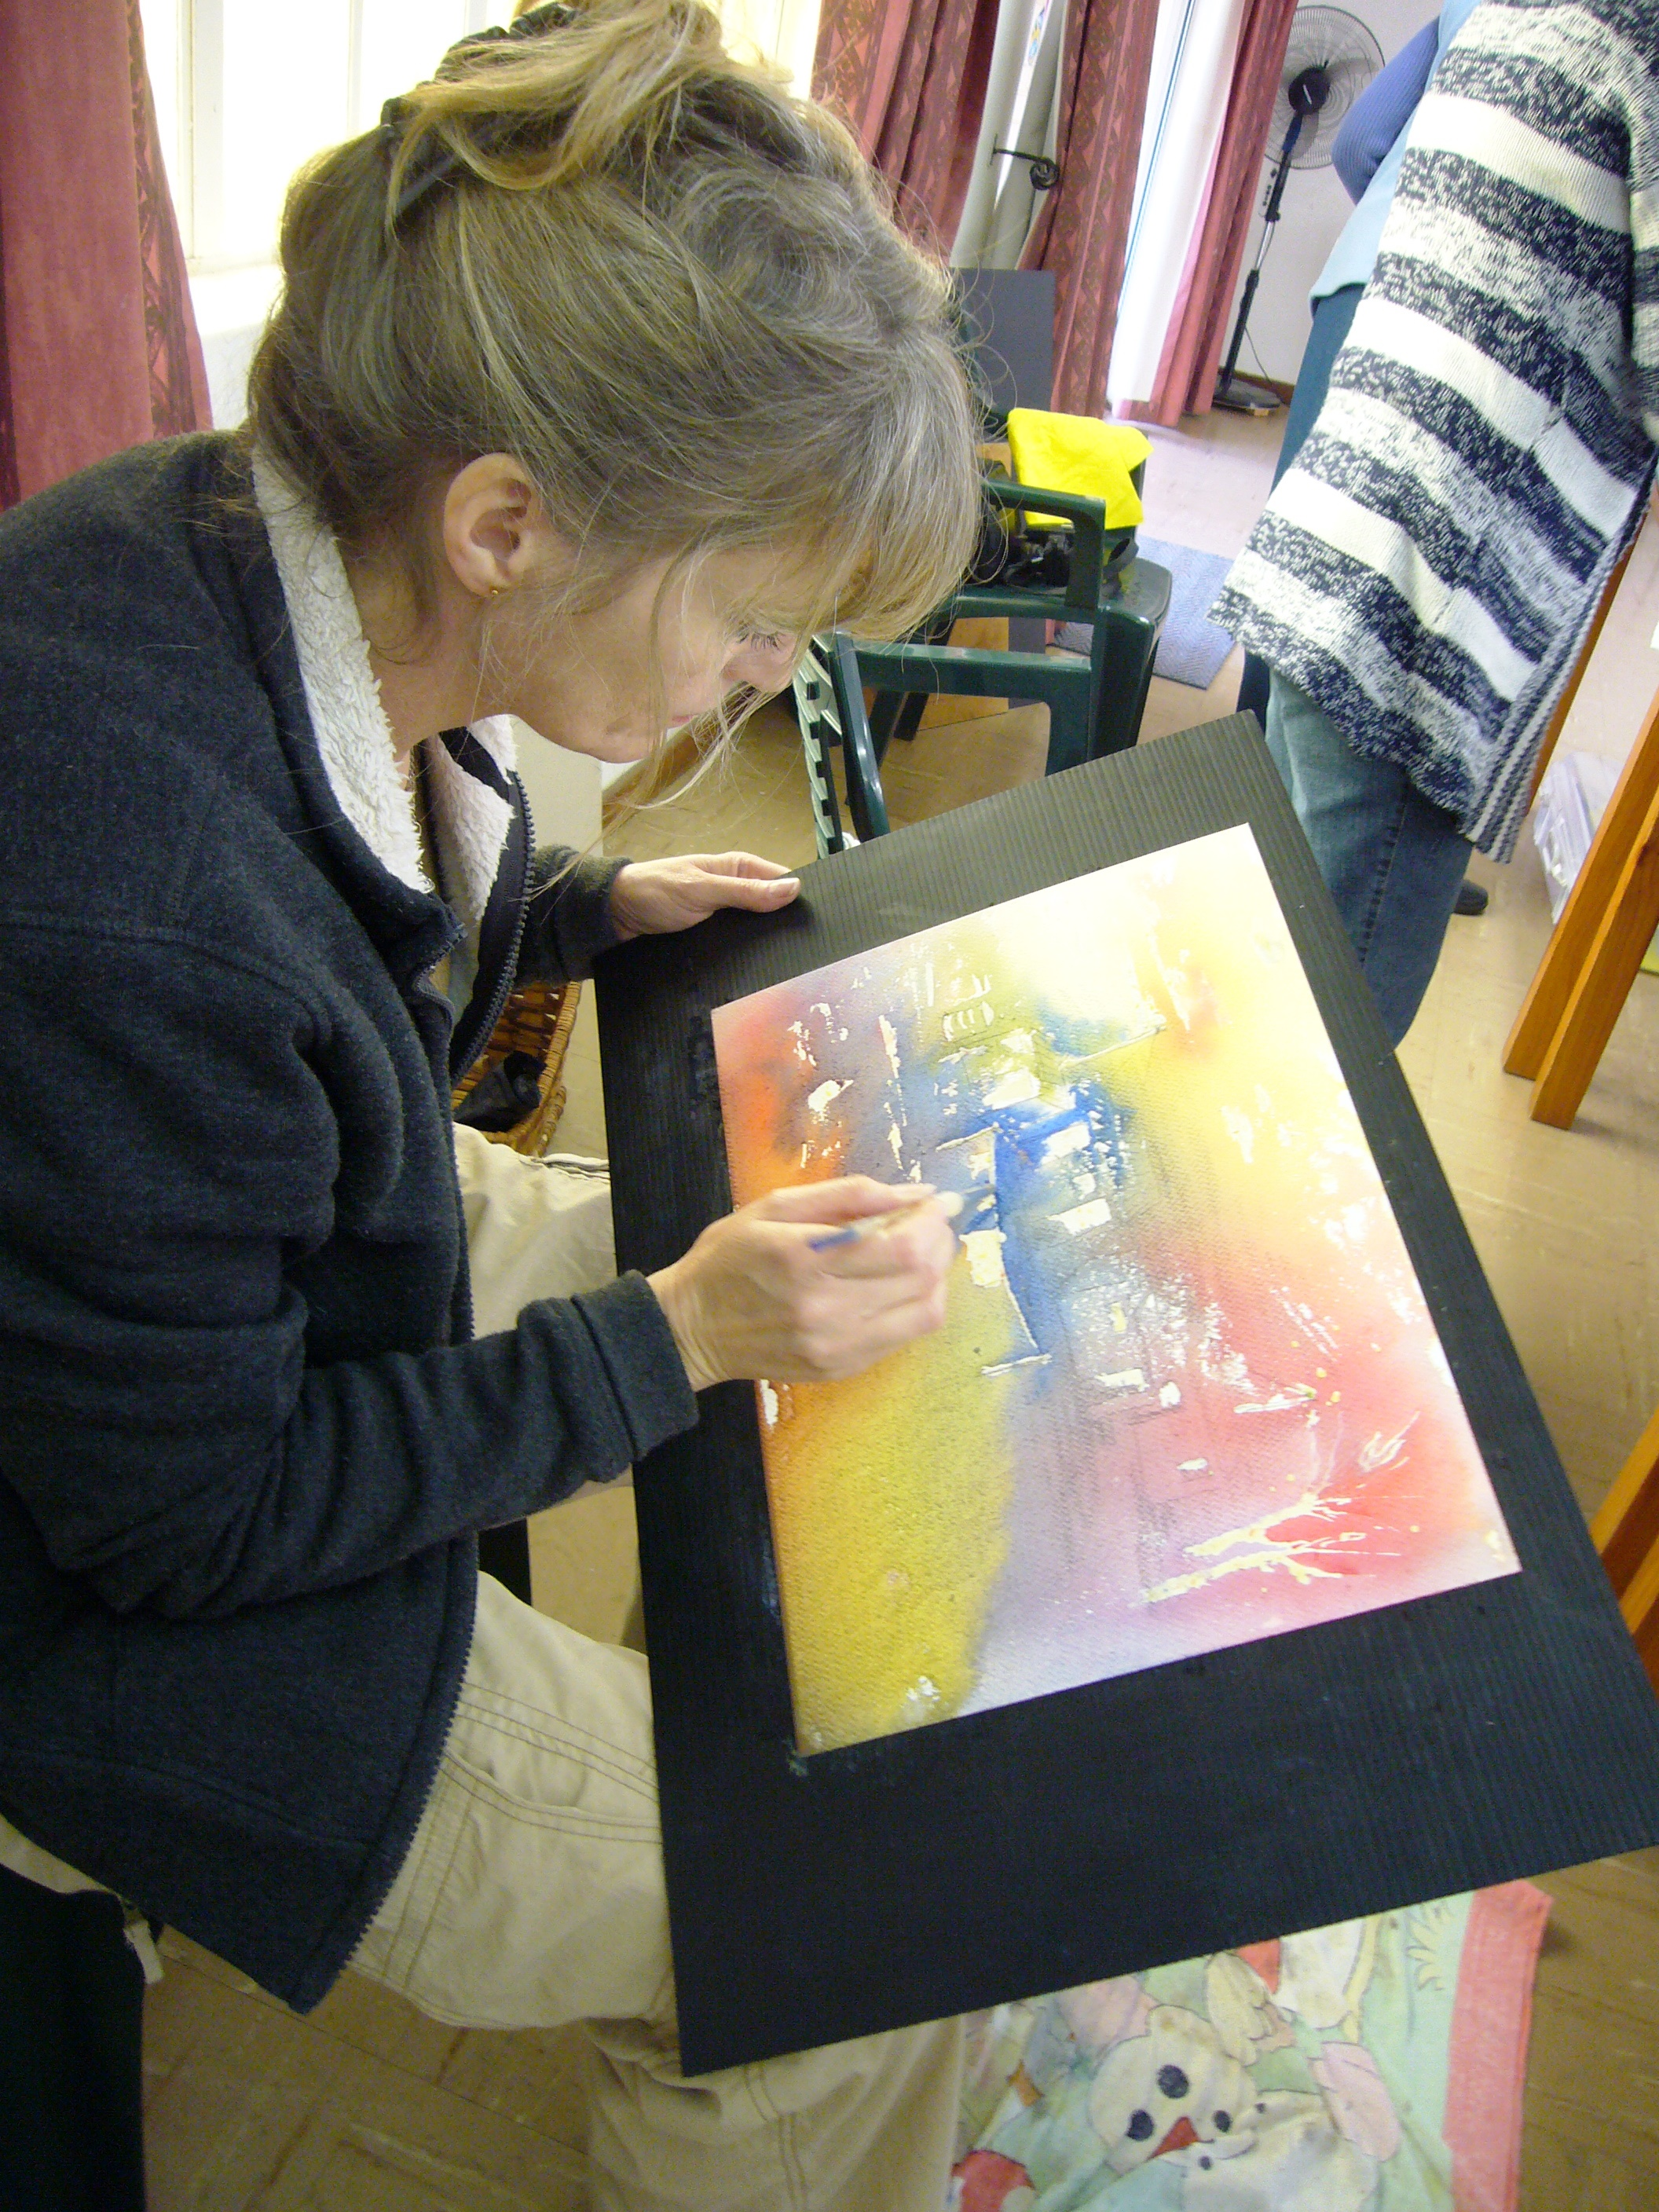 Irene Brand adding more lovely details to her beautiful beginning piece